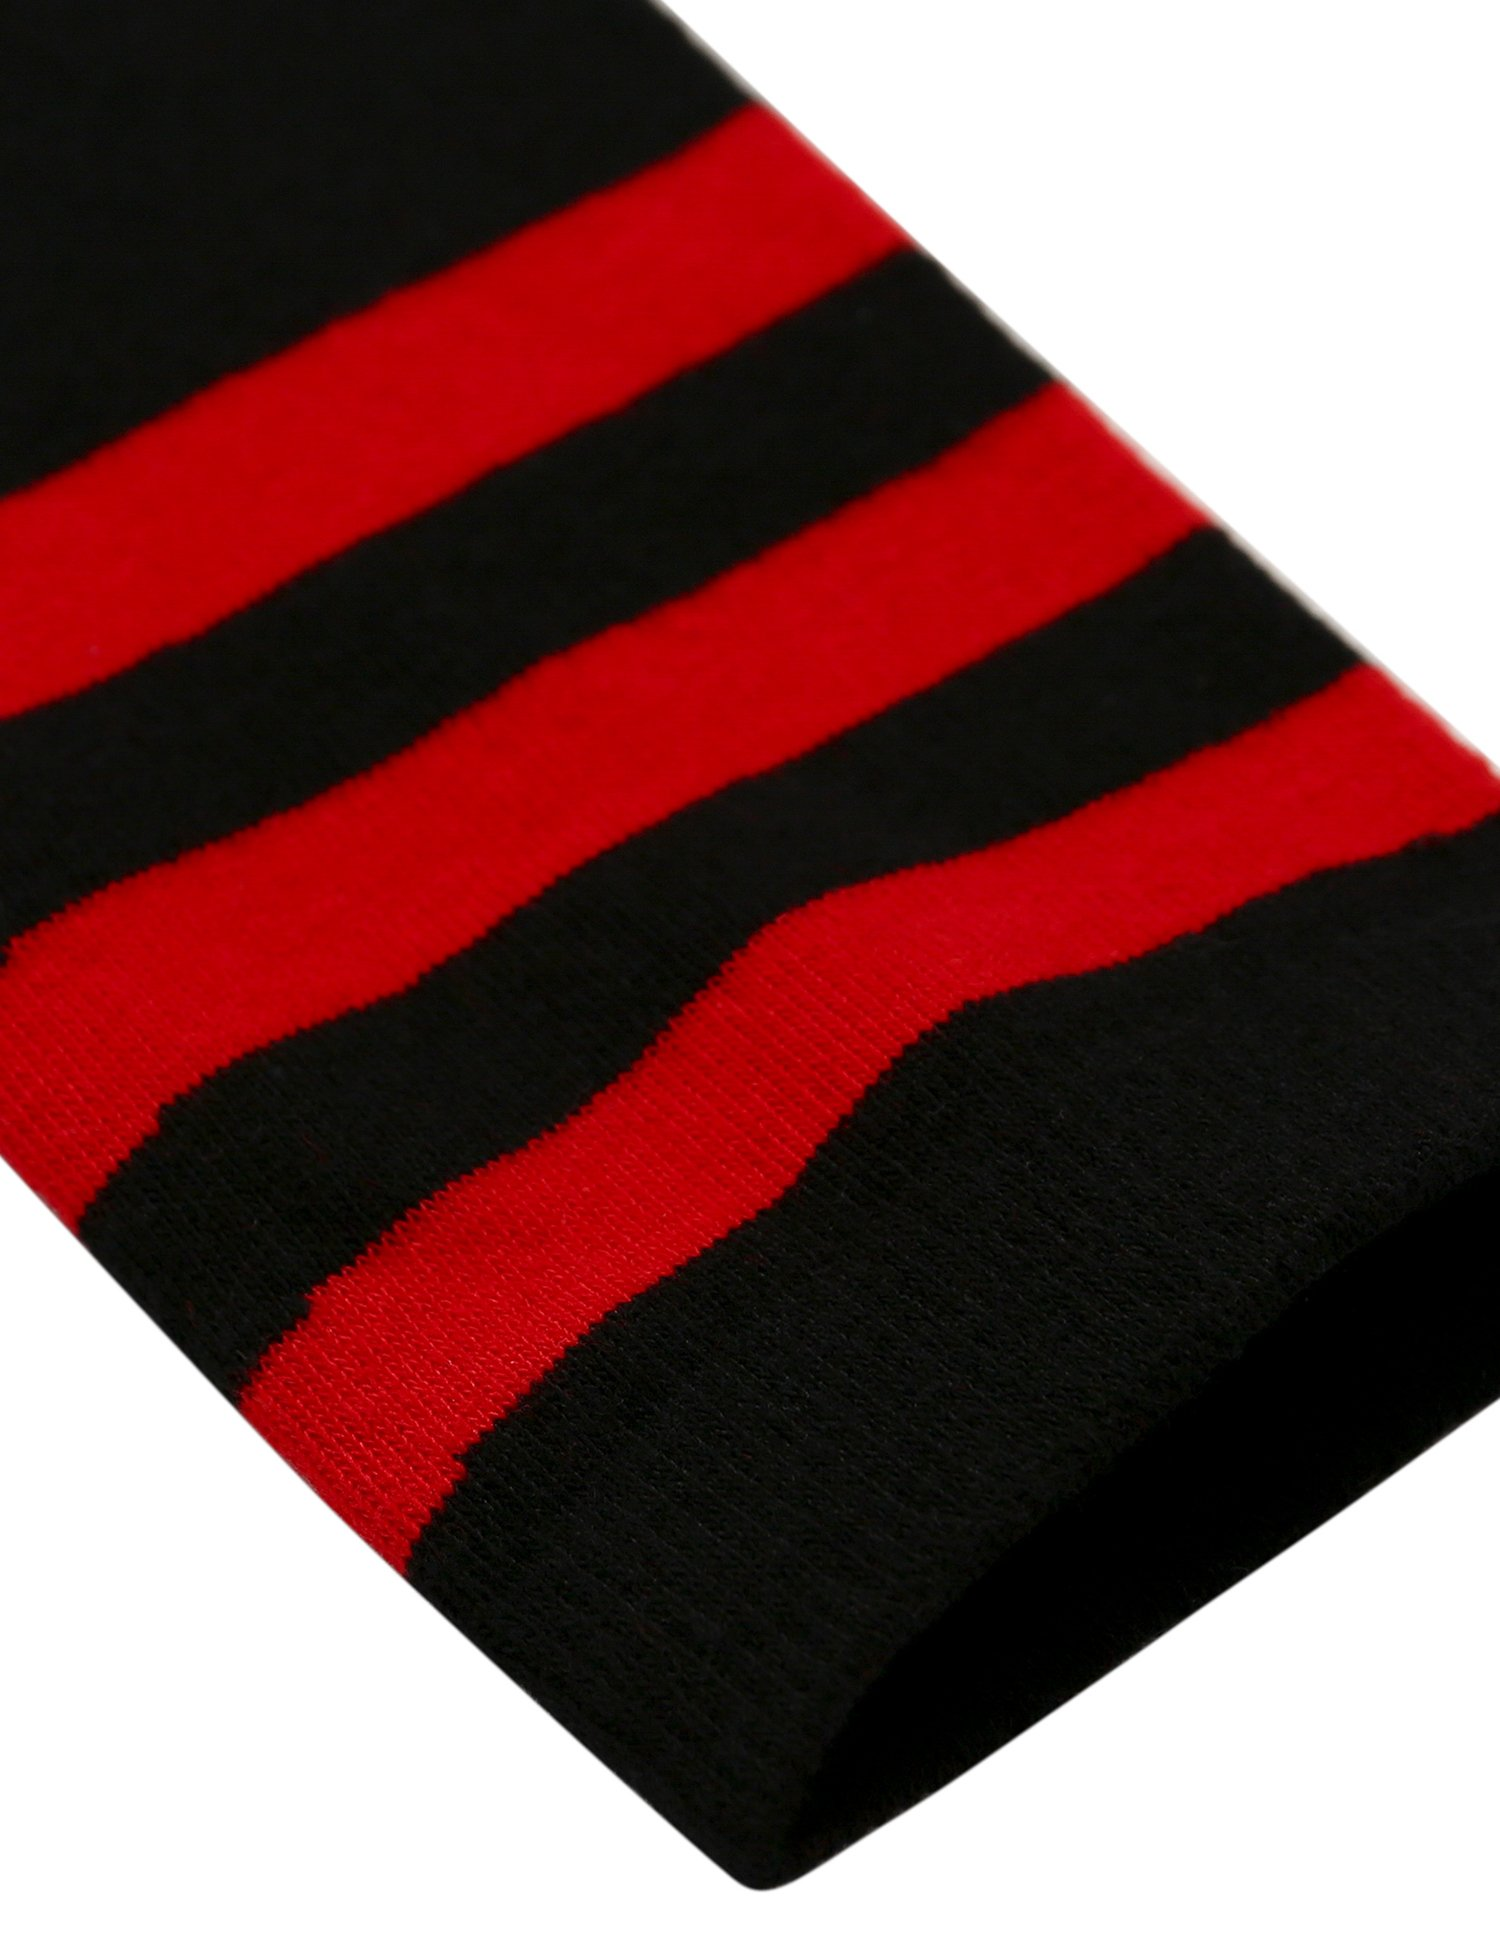 Joulli Women's Casual Stripe Knee High Socks, Black 3 Pairs, One Size by Joulli (Image #5)